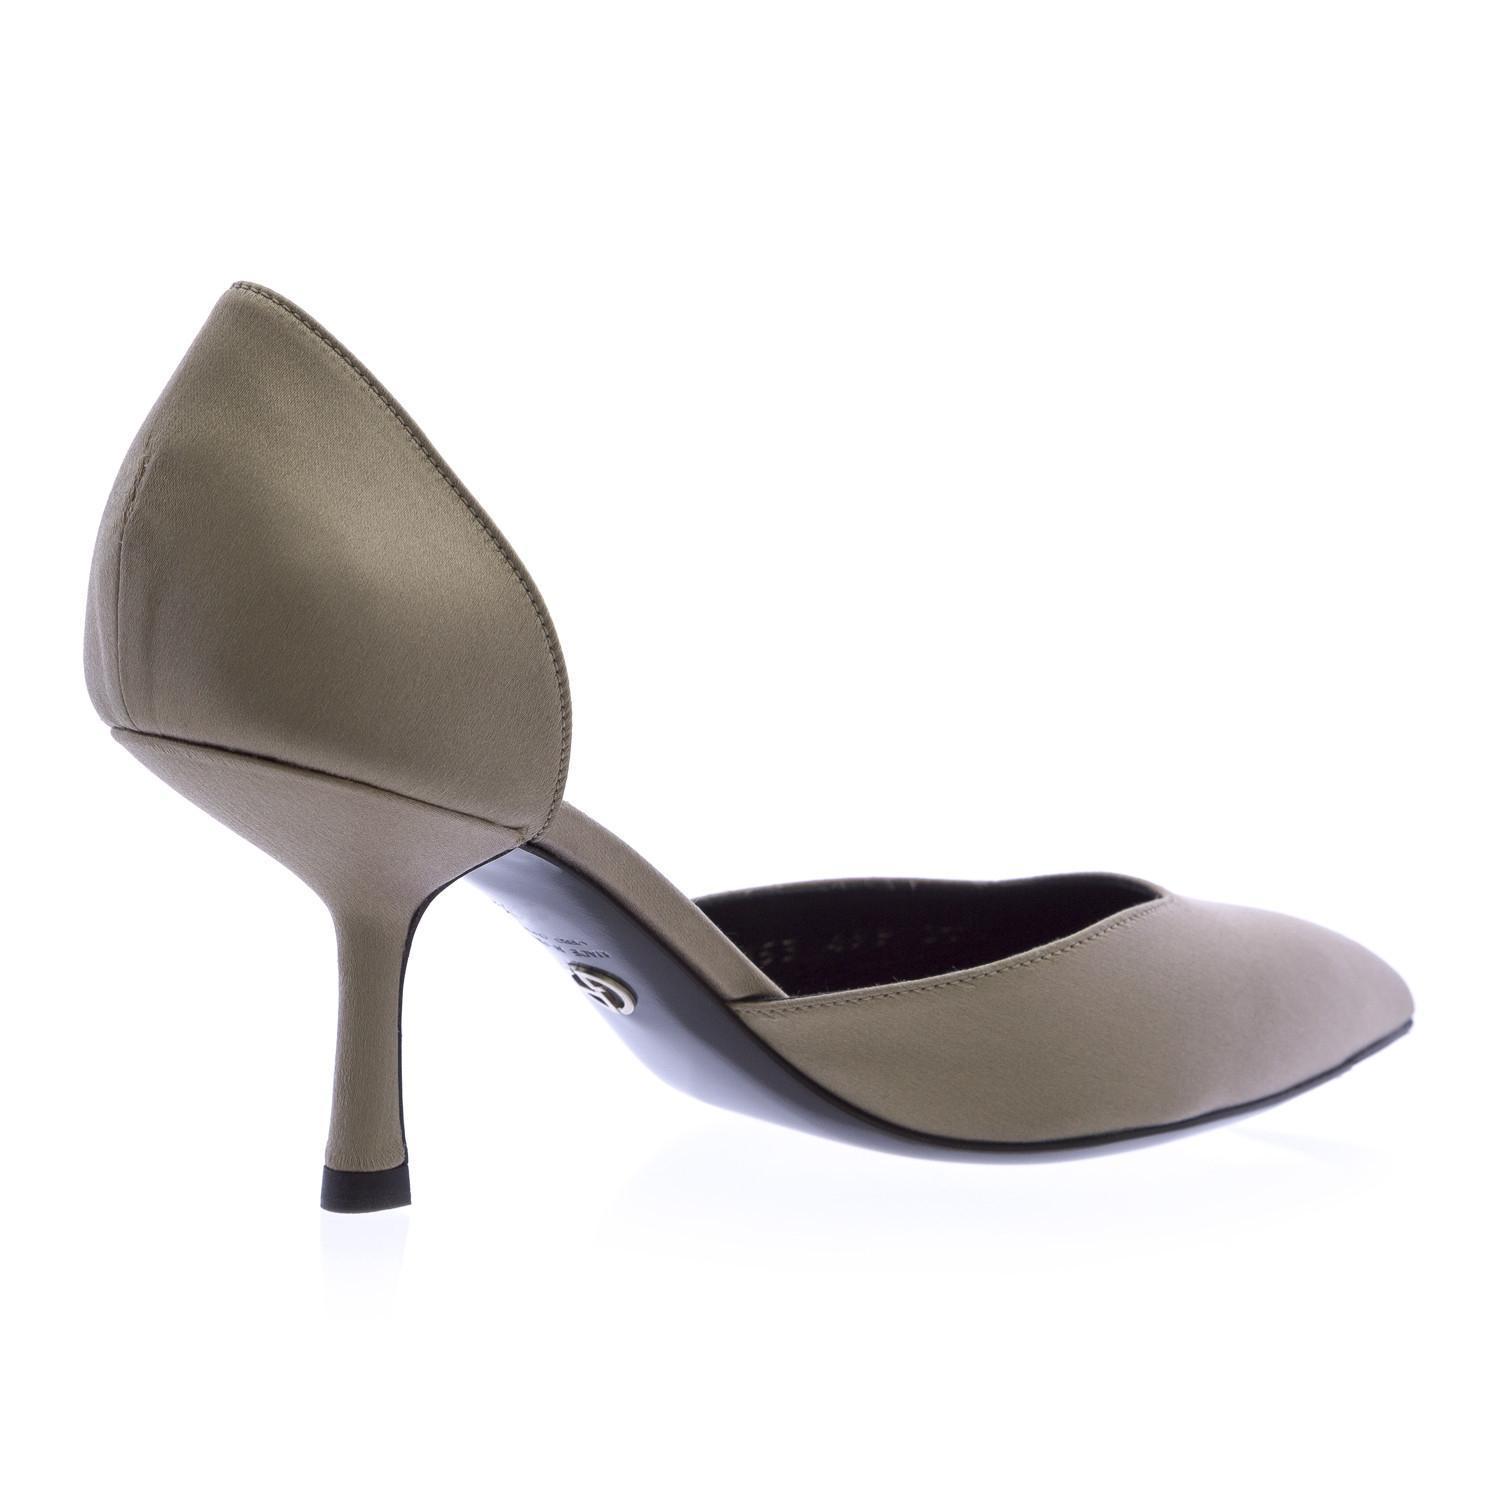 Taupe Kitten Heel Shoes